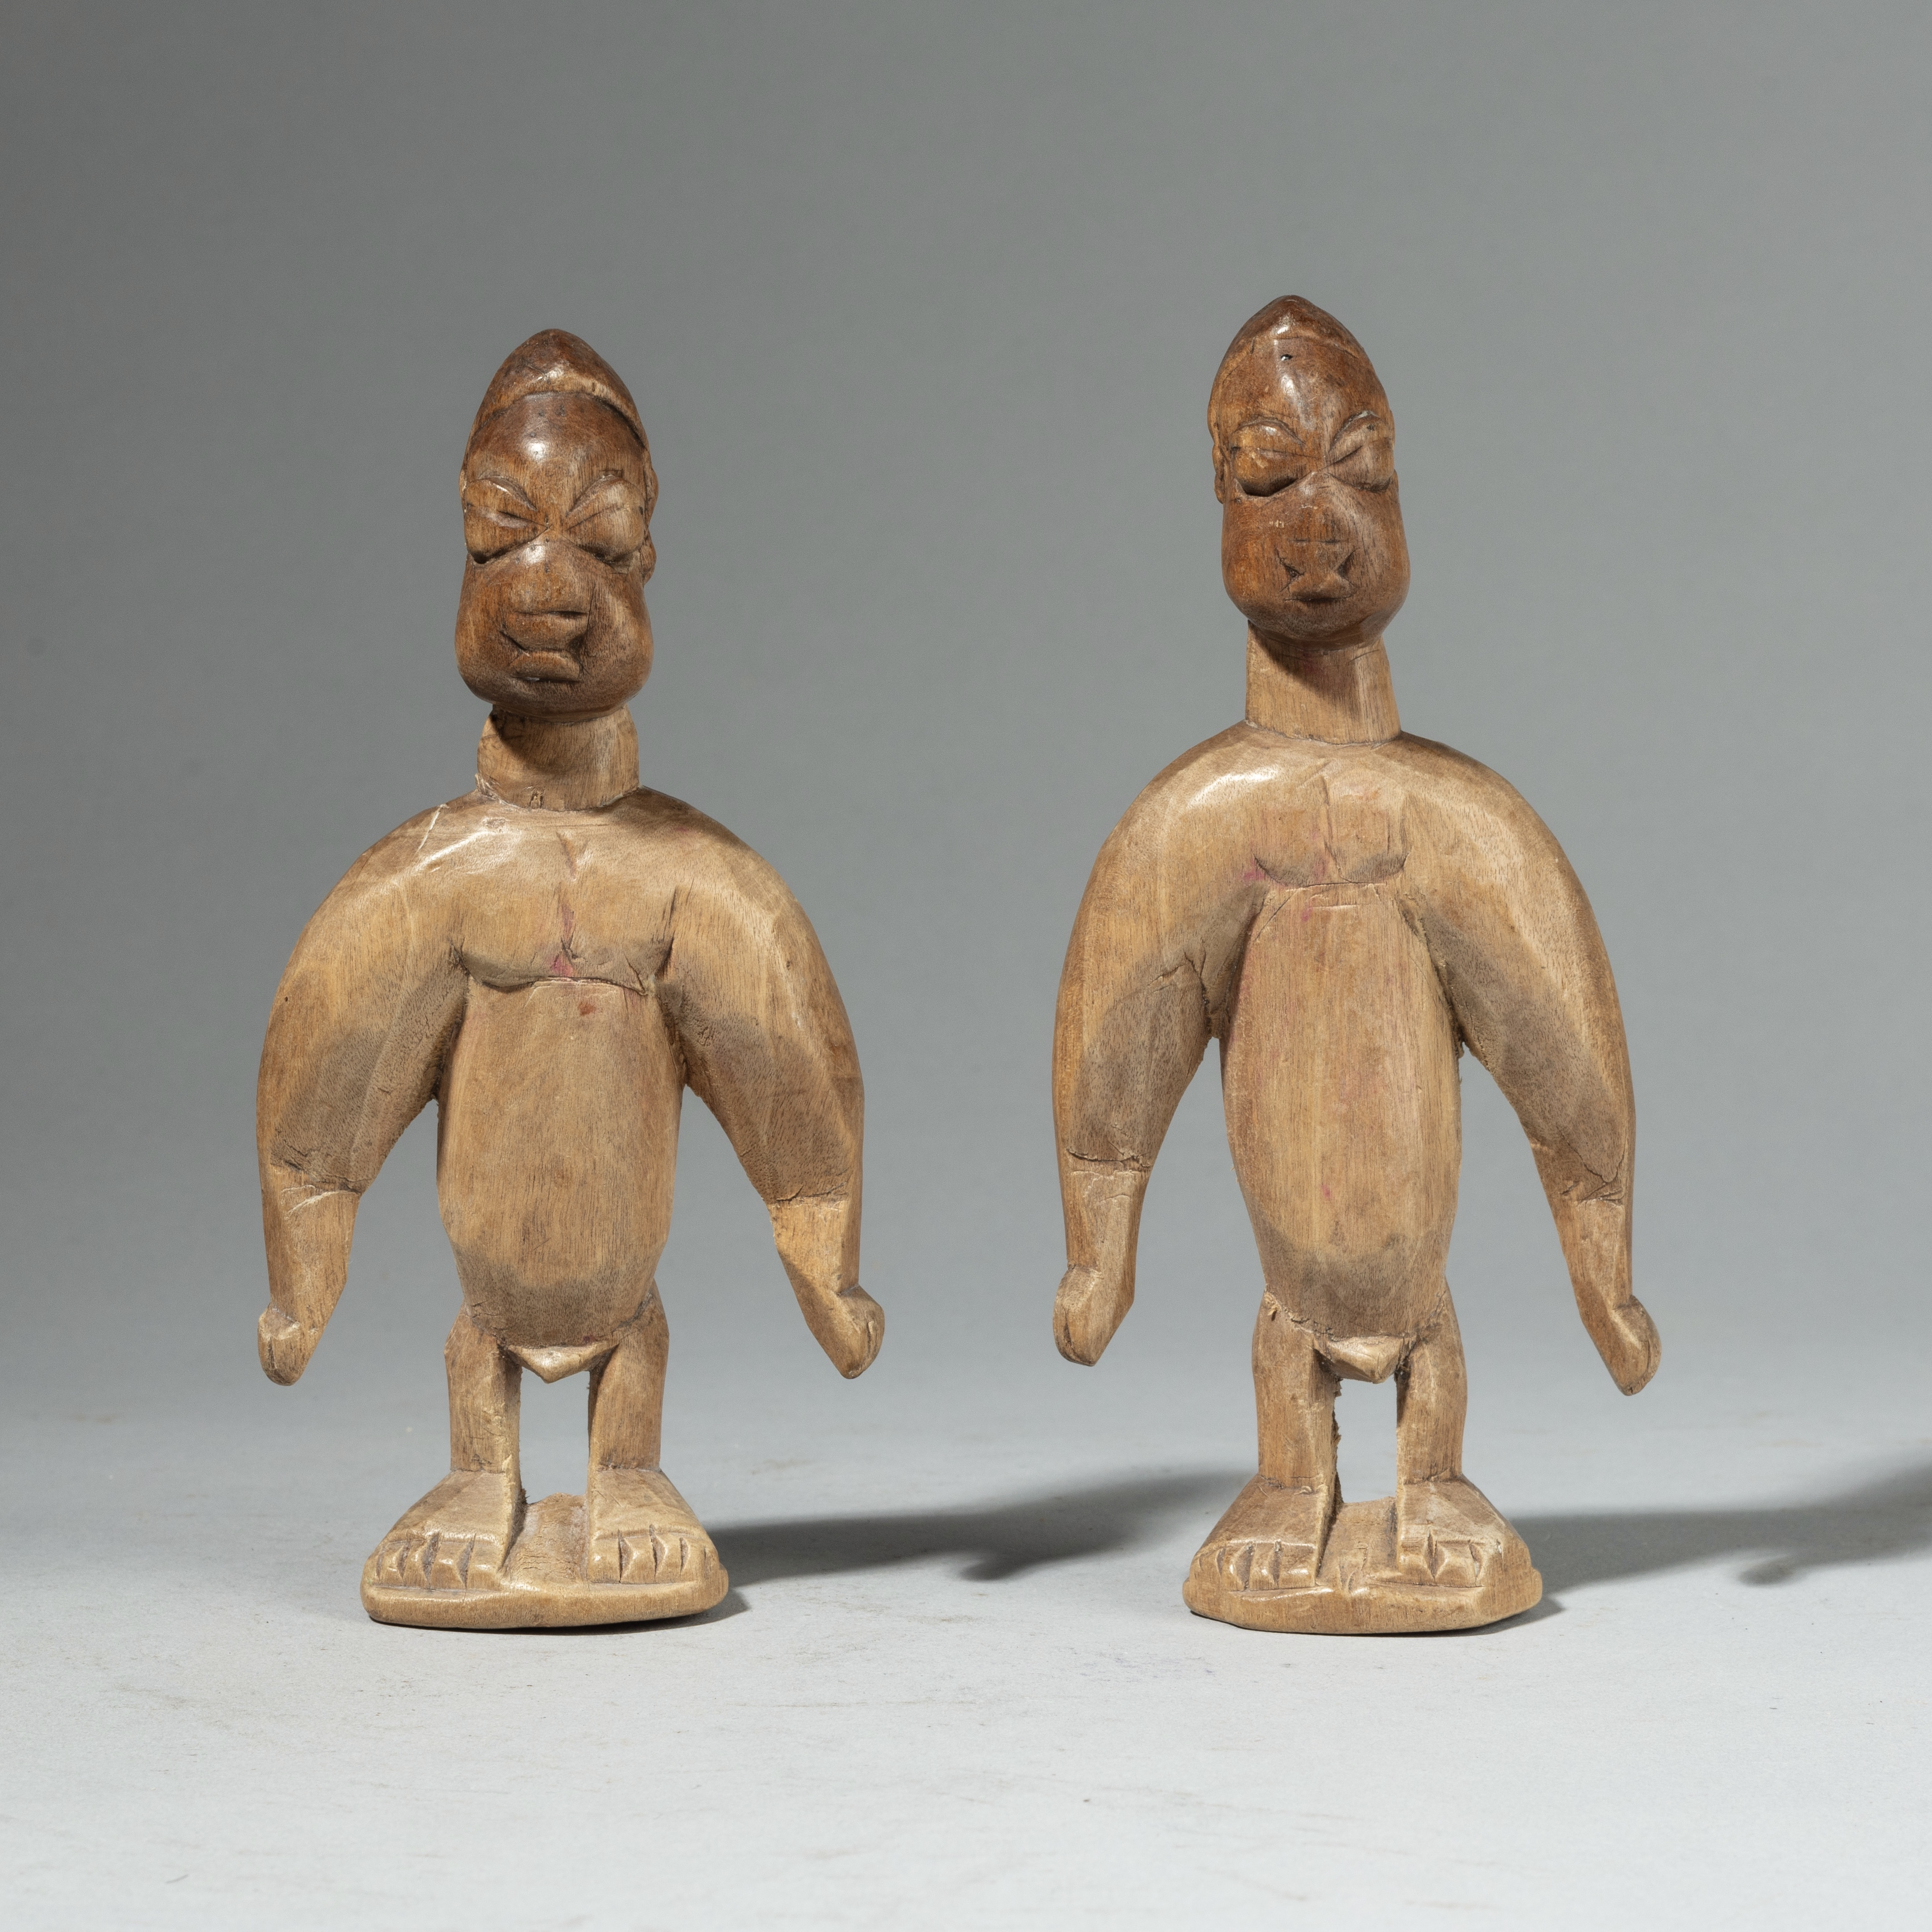 A MUSCULAR PAIR OF VENAVI DOLLS FROM EWE TRIBE TOGO, W. AFRICA( No 4382)